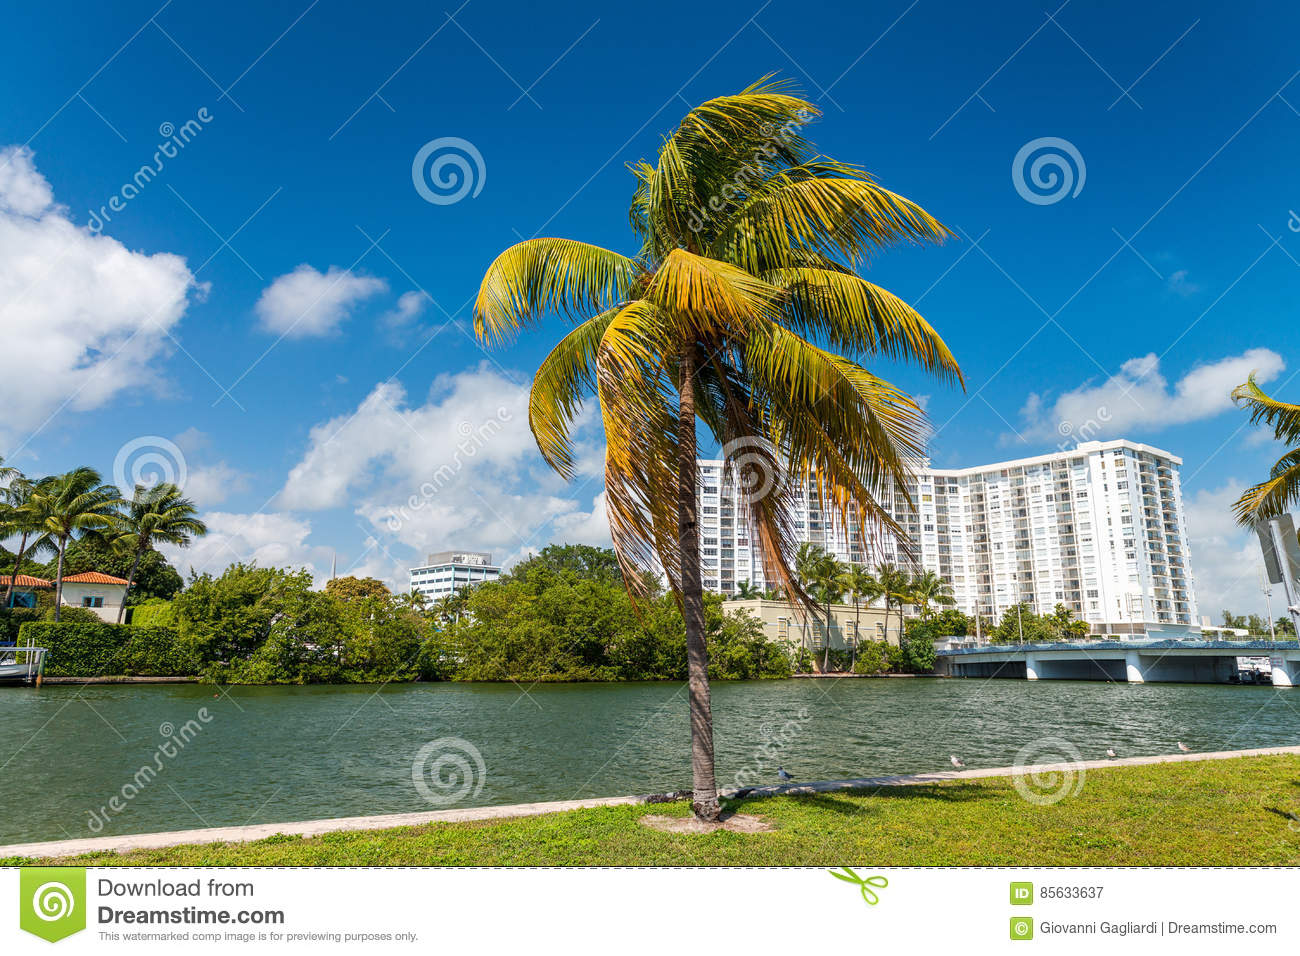 Palms and buildings of Miami Beach - Florida, USA